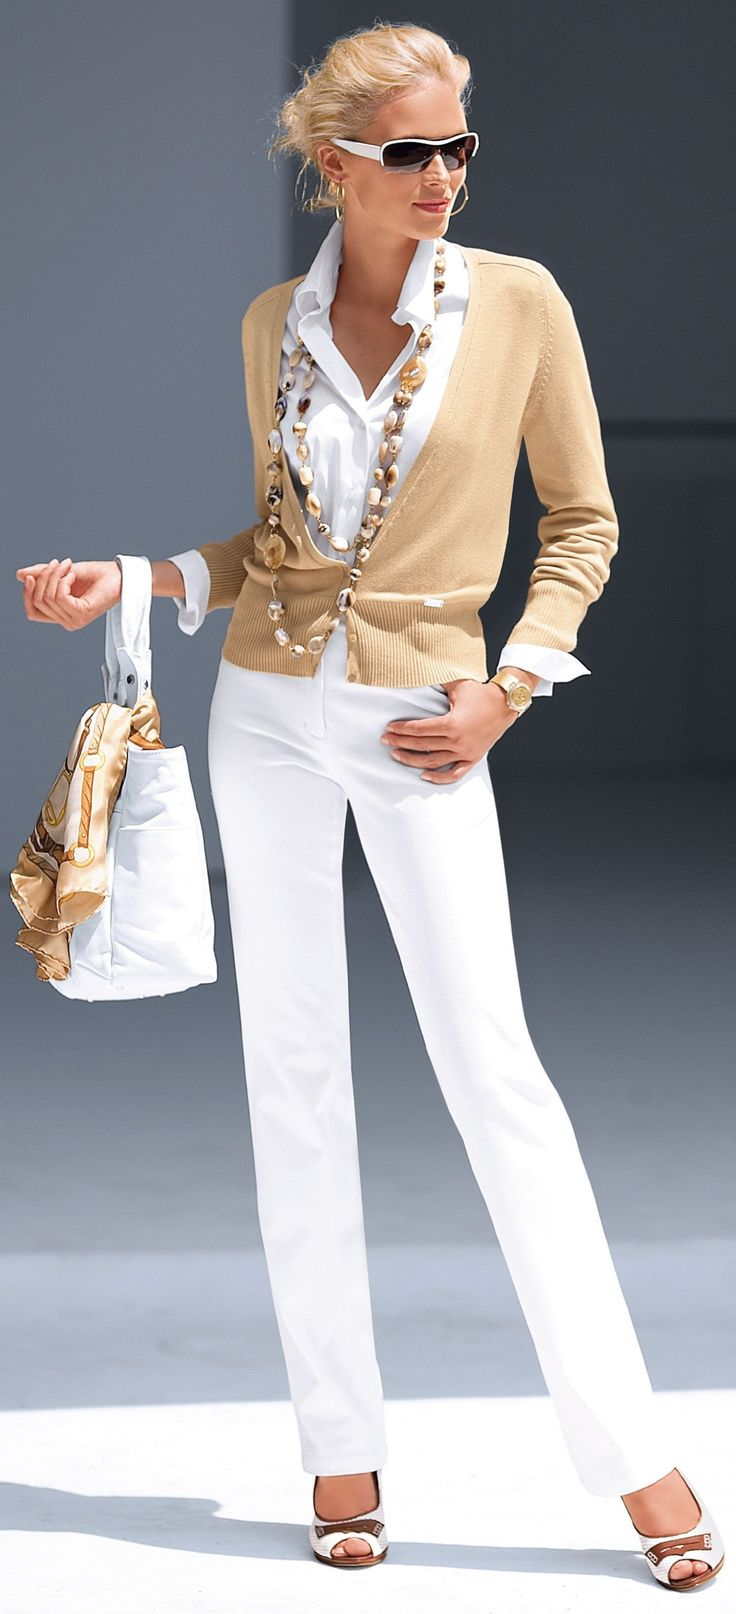 White and beige.